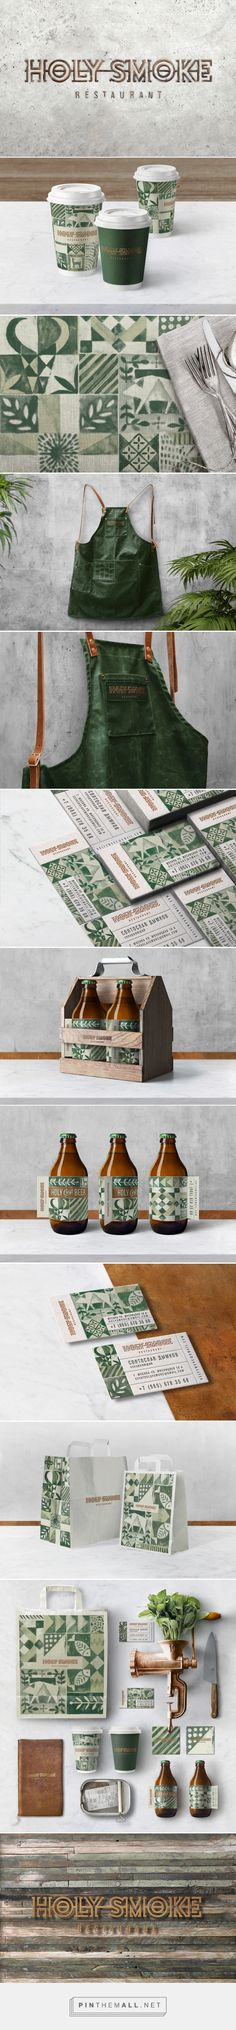 HOLY SMOKE Restaurant on Behance - created via https://pinthemall.net